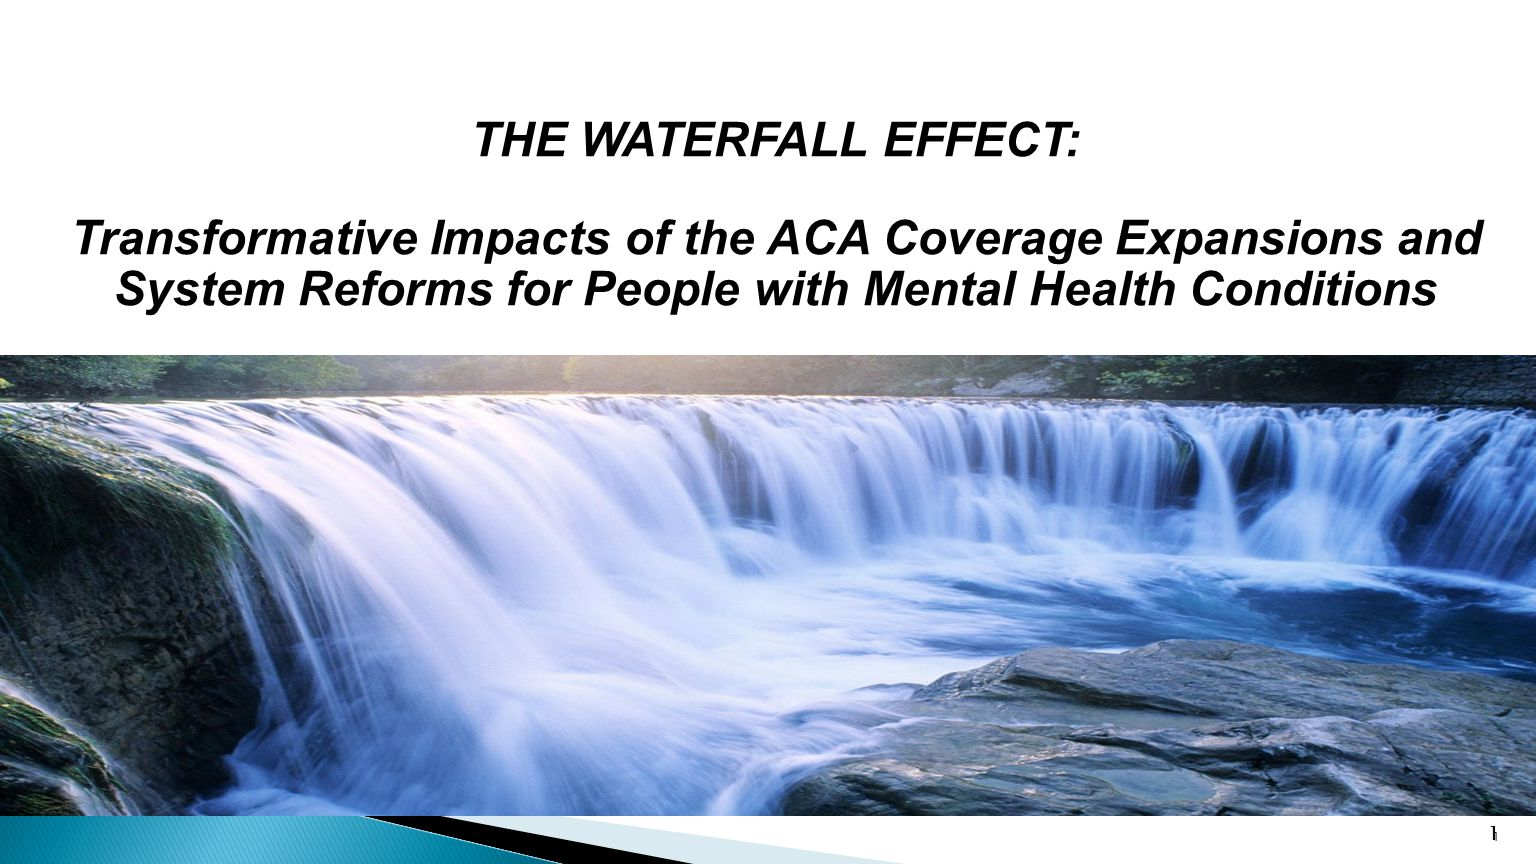 11 THE WATERFALL EFFECT: Transformative Impacts of the ACA Coverage Expansions and System Reforms for People with Mental Health Conditions 1